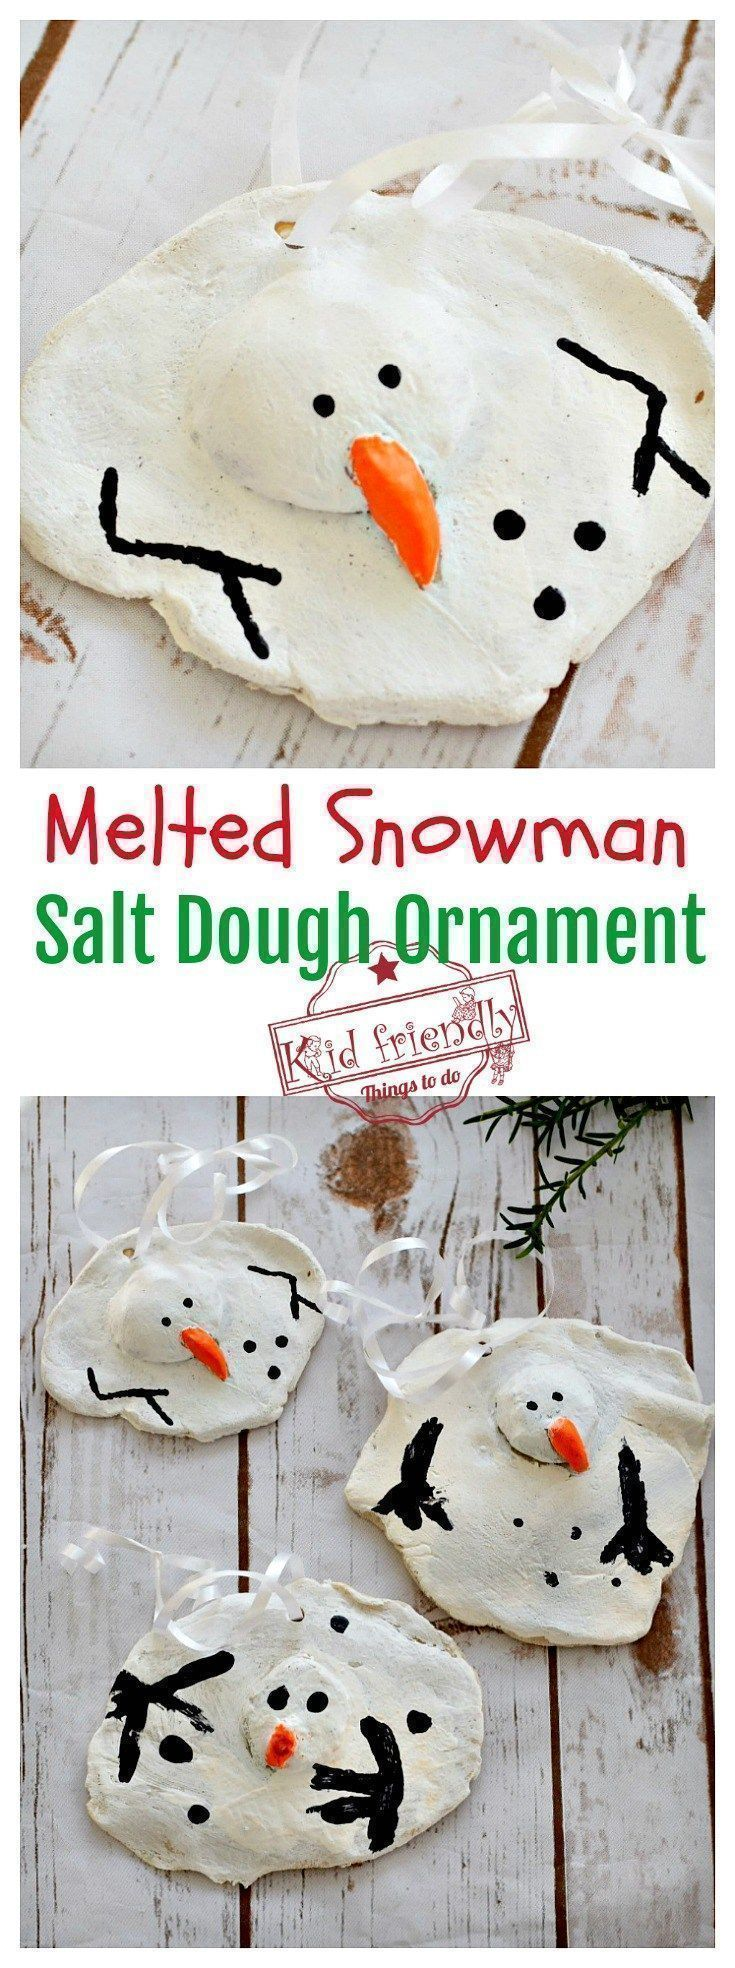 A Diy Melted Snowman And Candy Cane Salt Dough Ornament Idea And Recipe For Christmas With Kids Salt Dough Christmas Ornaments Kids Christmas Ornaments Christmas Ornaments Homemade